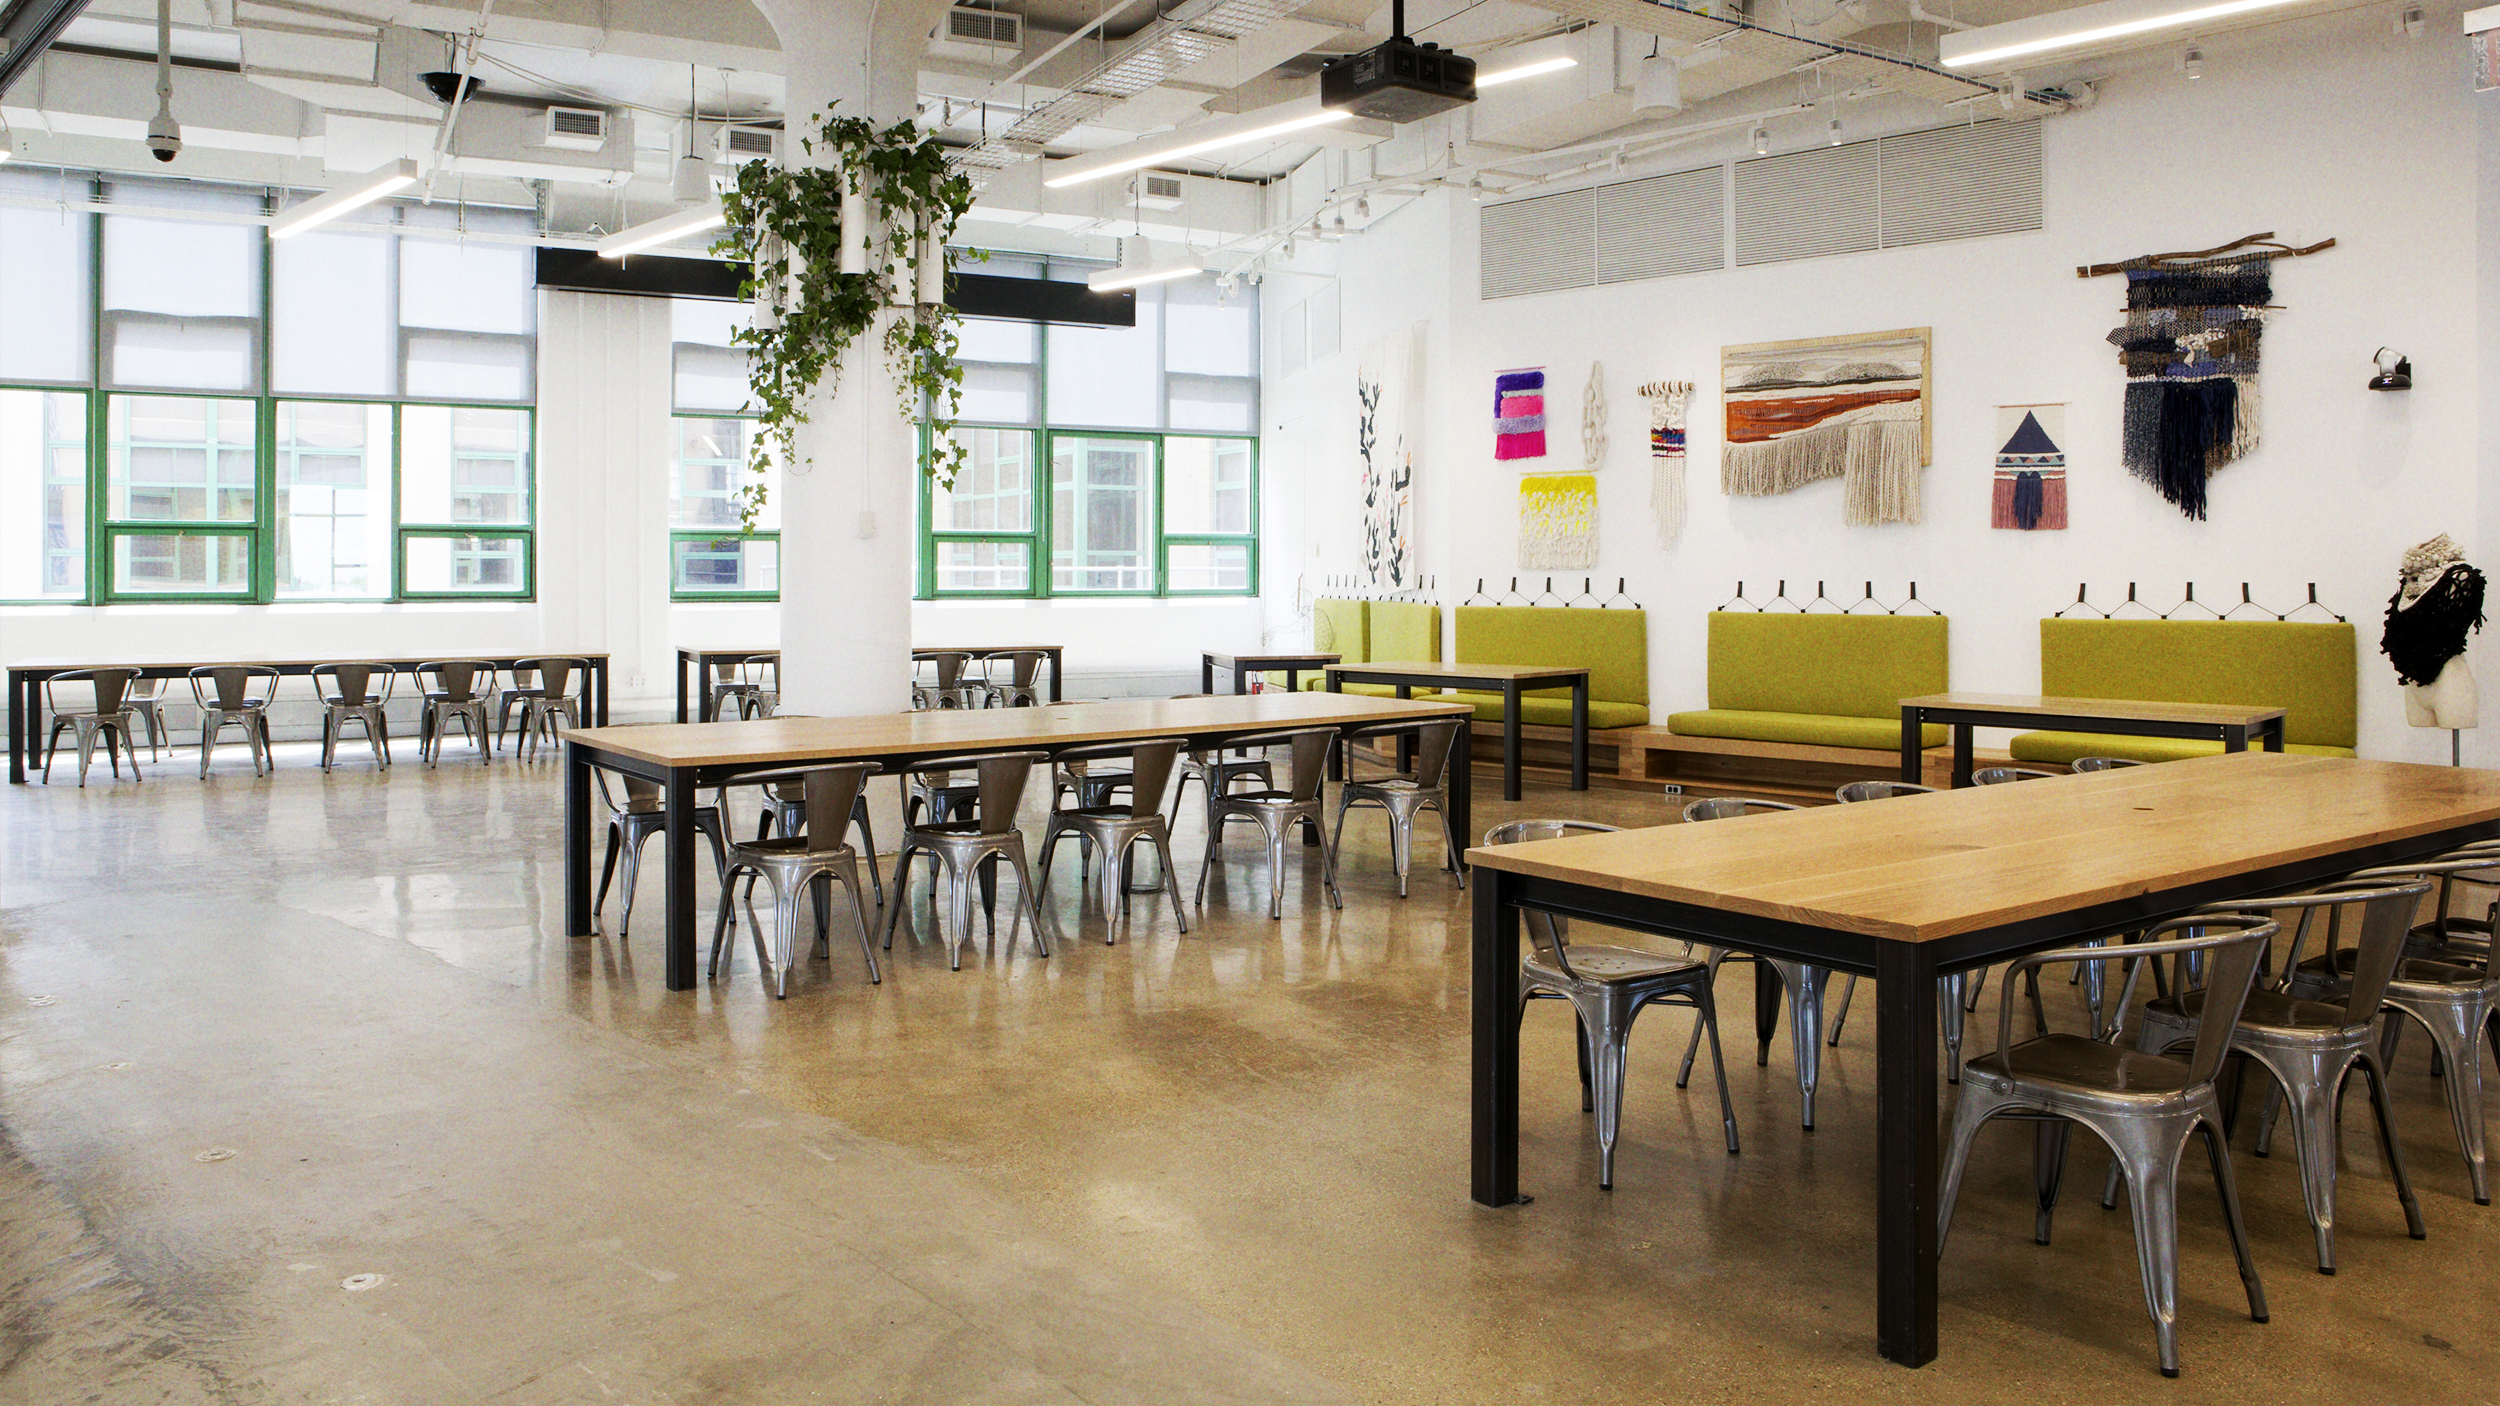 makerspace-worktables-at-new-etsy-hq